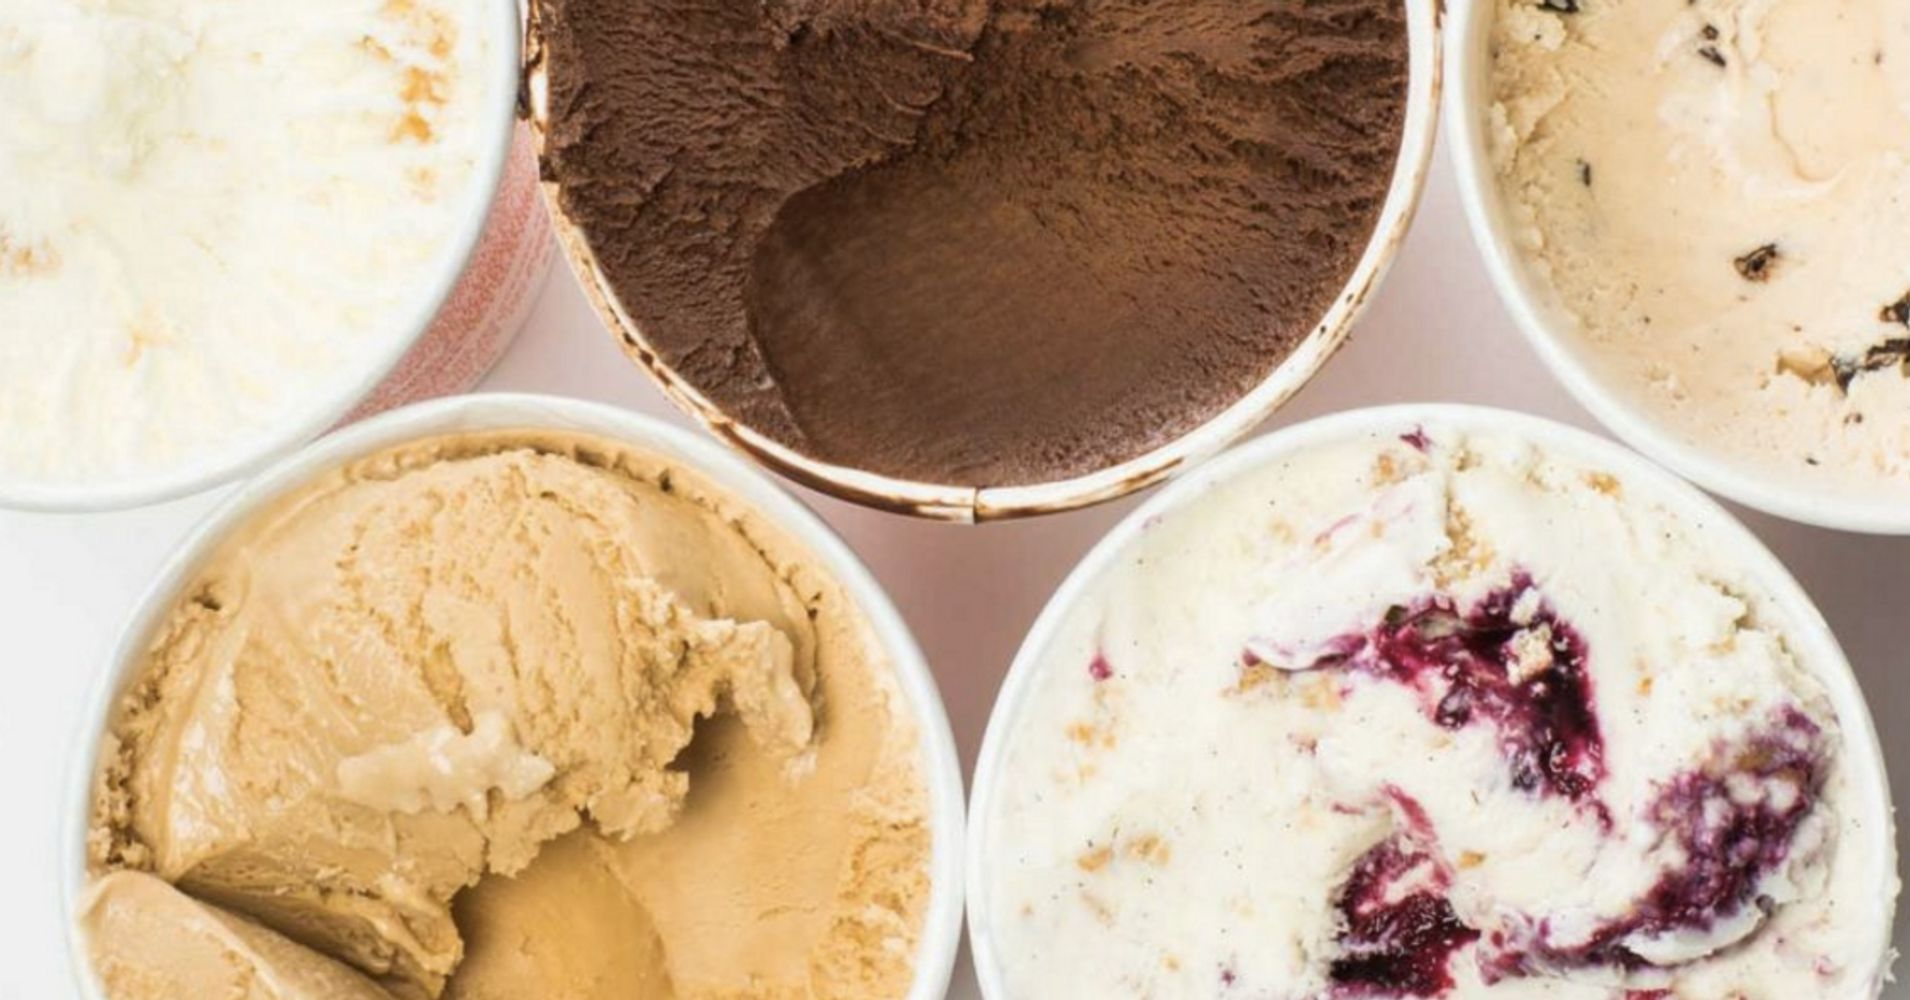 How Jeni's Splendid Ice Creams Is Fighting Waste In A Genius Way | HuffPost